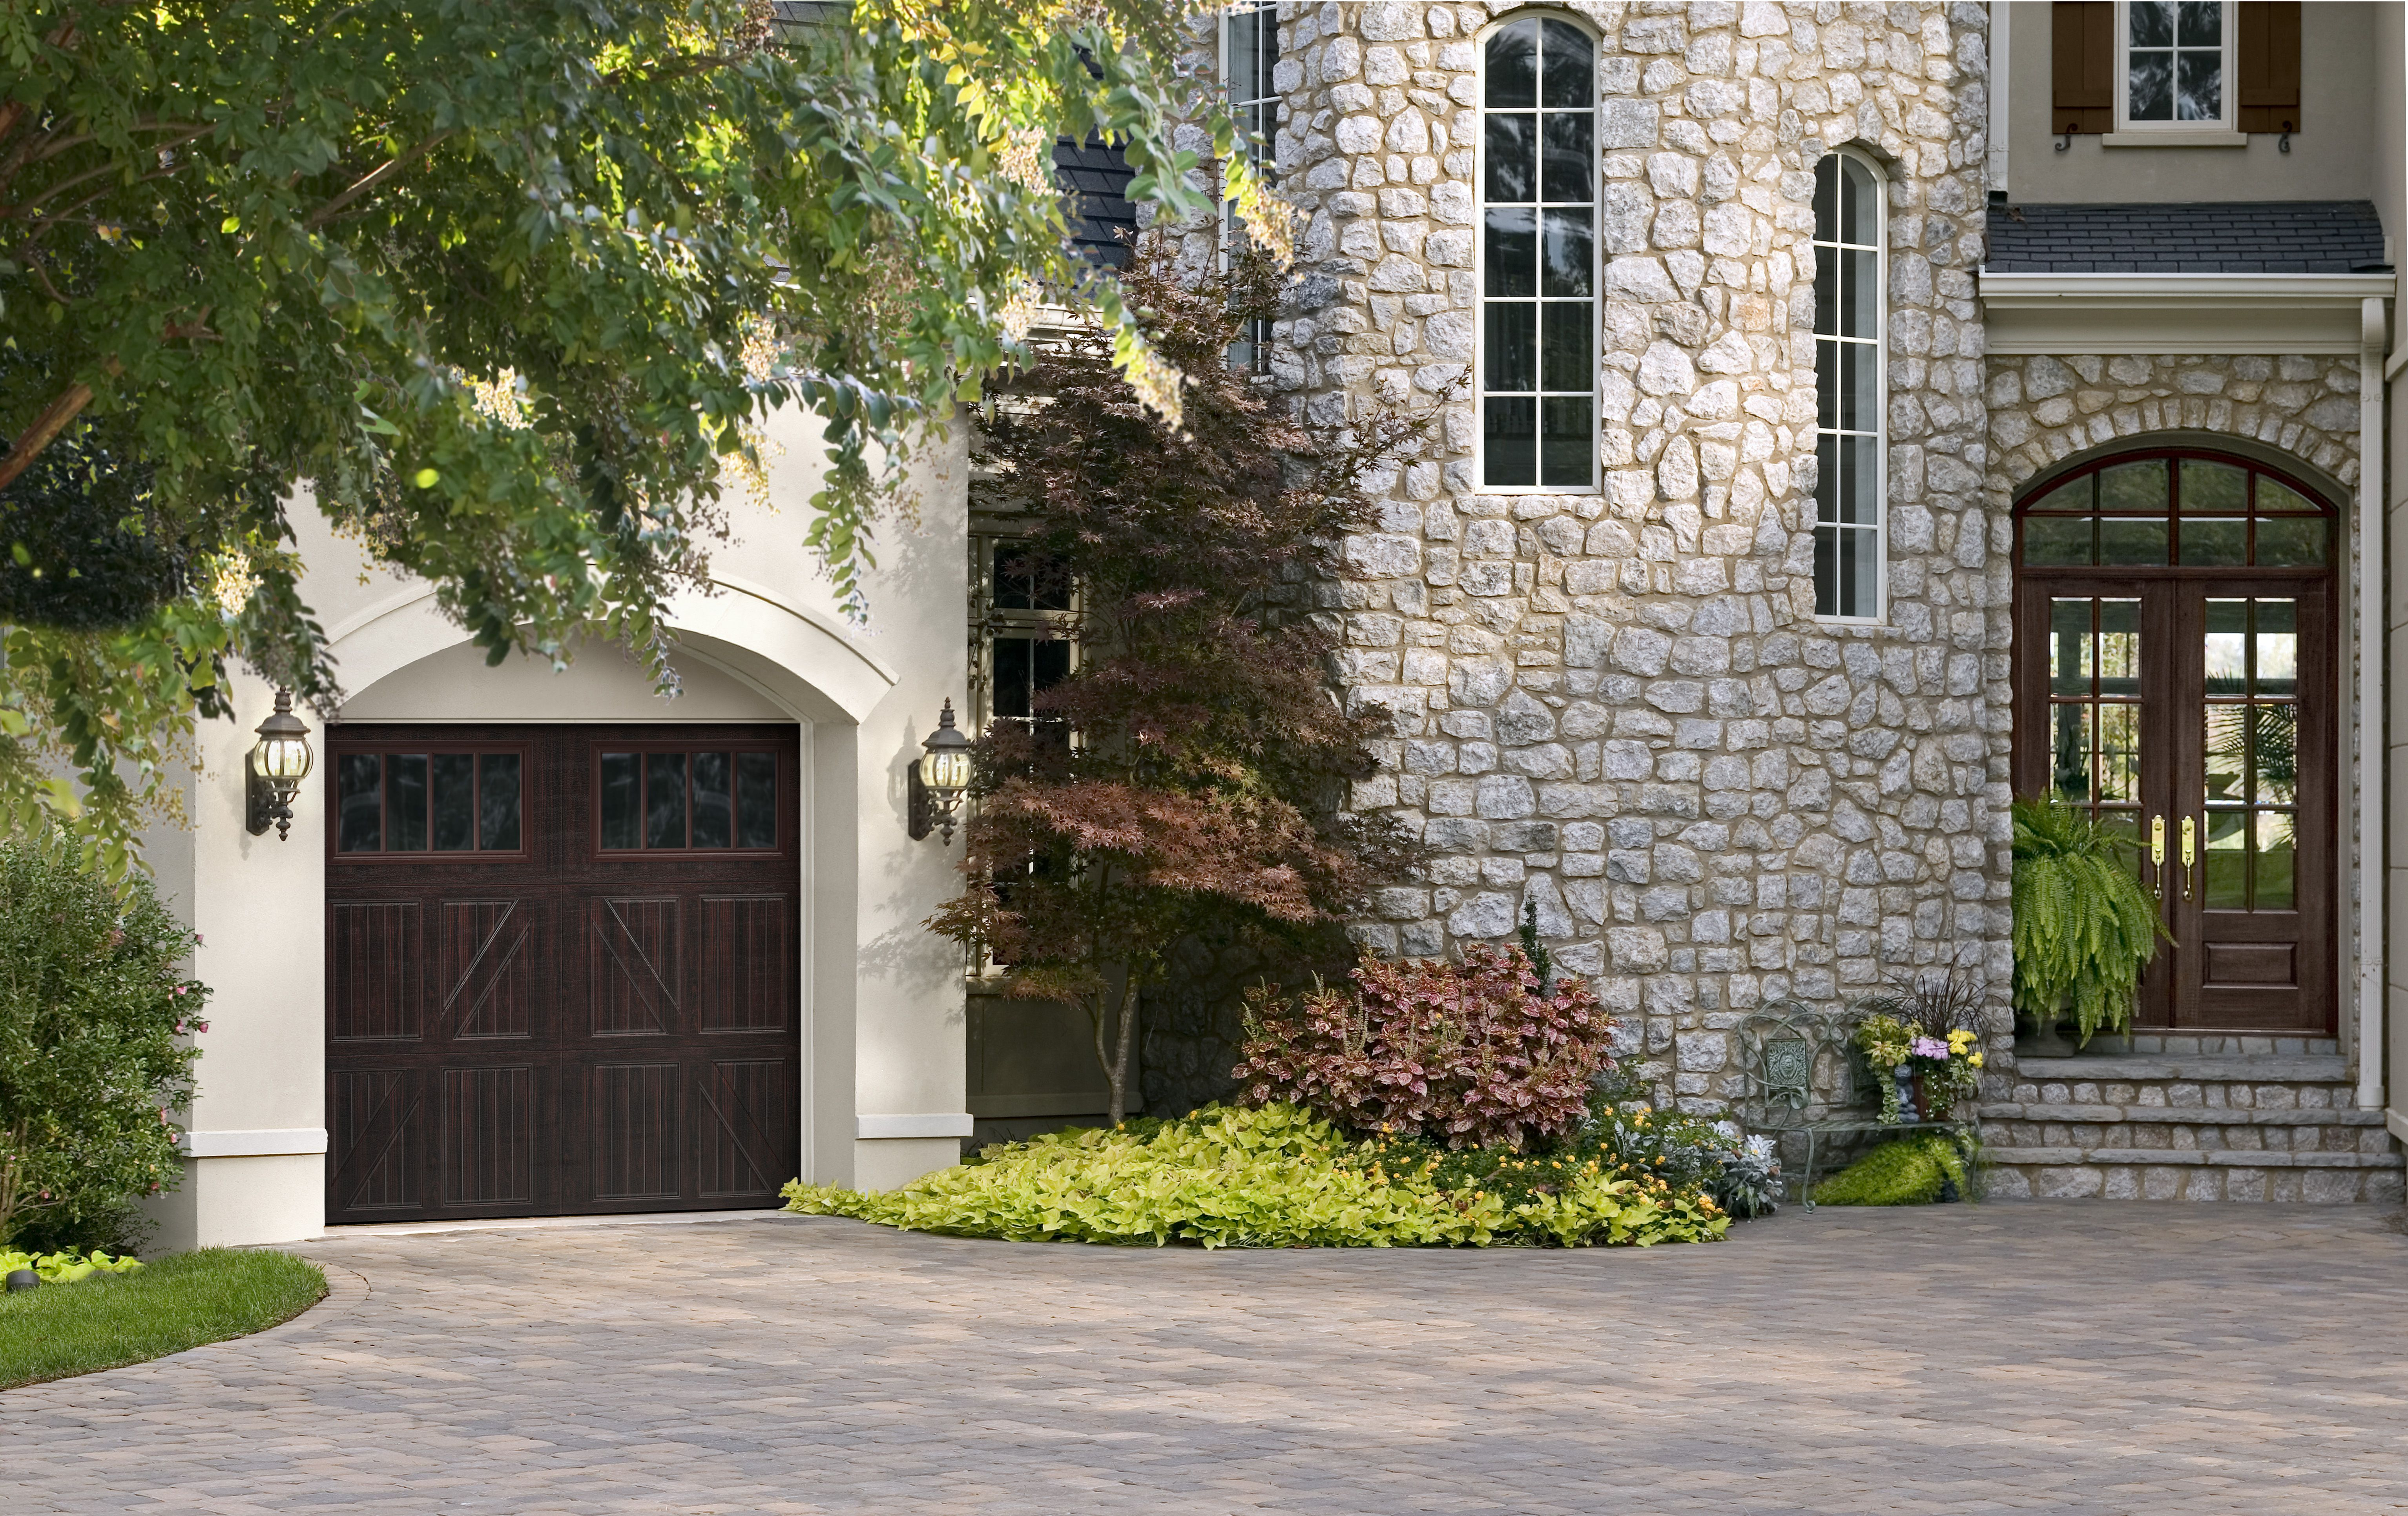 Amarr classica garage doors - Find This Pin And More On Steel Carriage House Garage Doors Amarr Classica